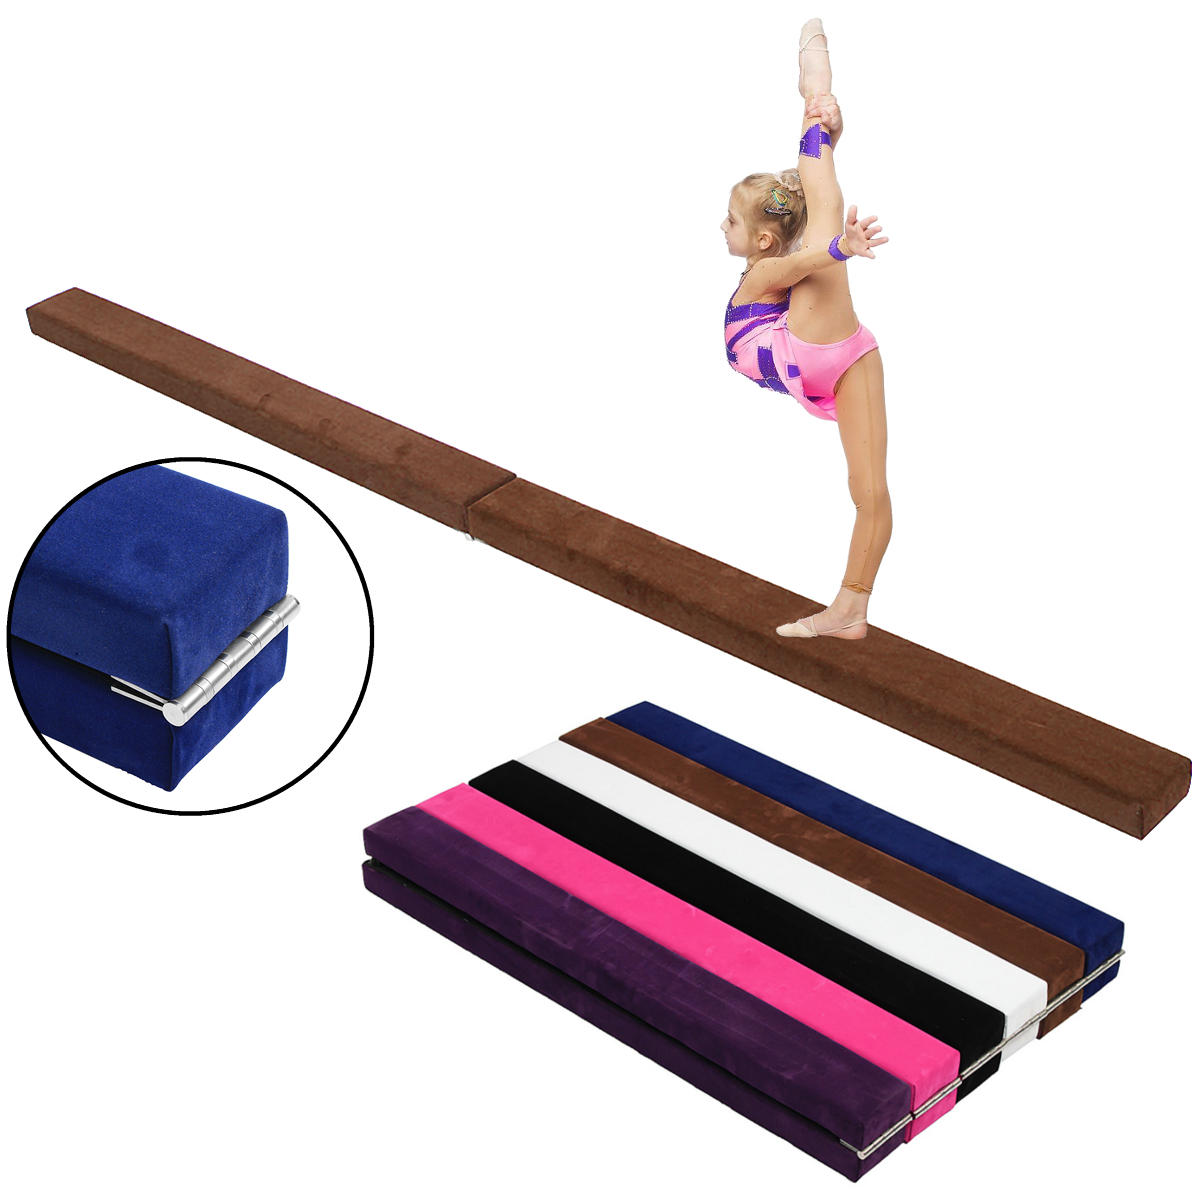 86.6x4x2.8inch Folding Balance Beam Cushion Train Mattress Gymnastics Mat Sport Pad